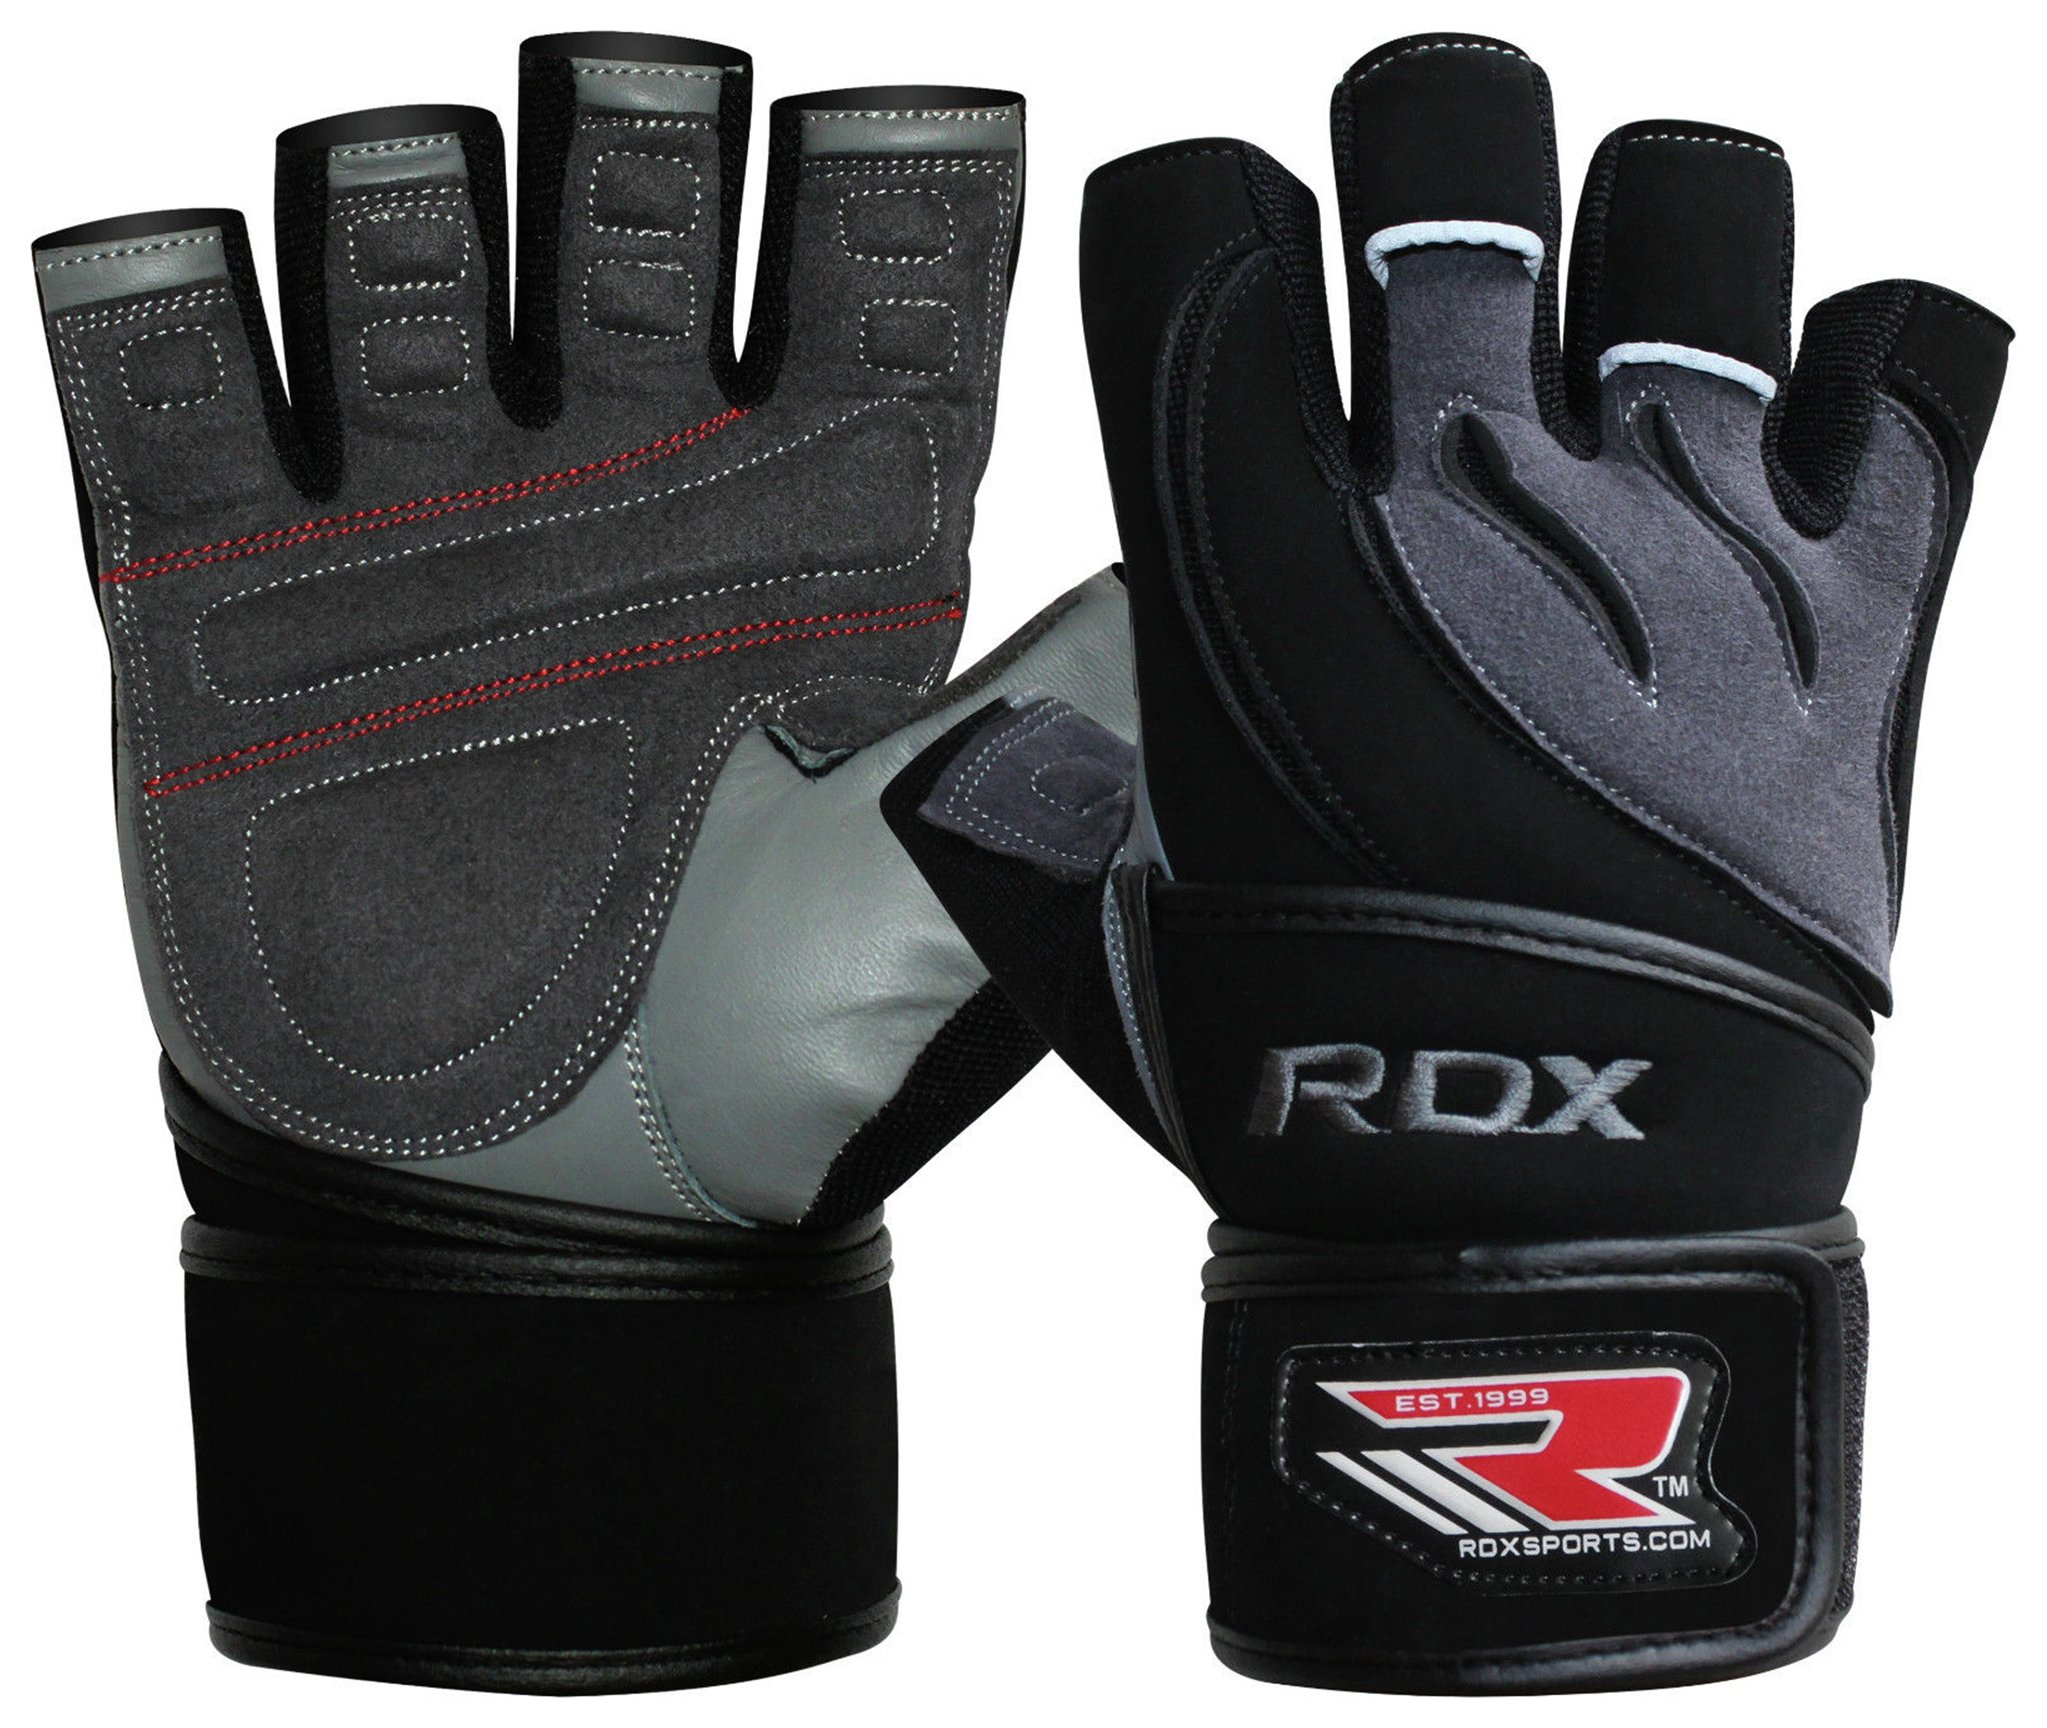 Driving gloves argos - Rdx Leather Weight Lifting Gloves With Strap